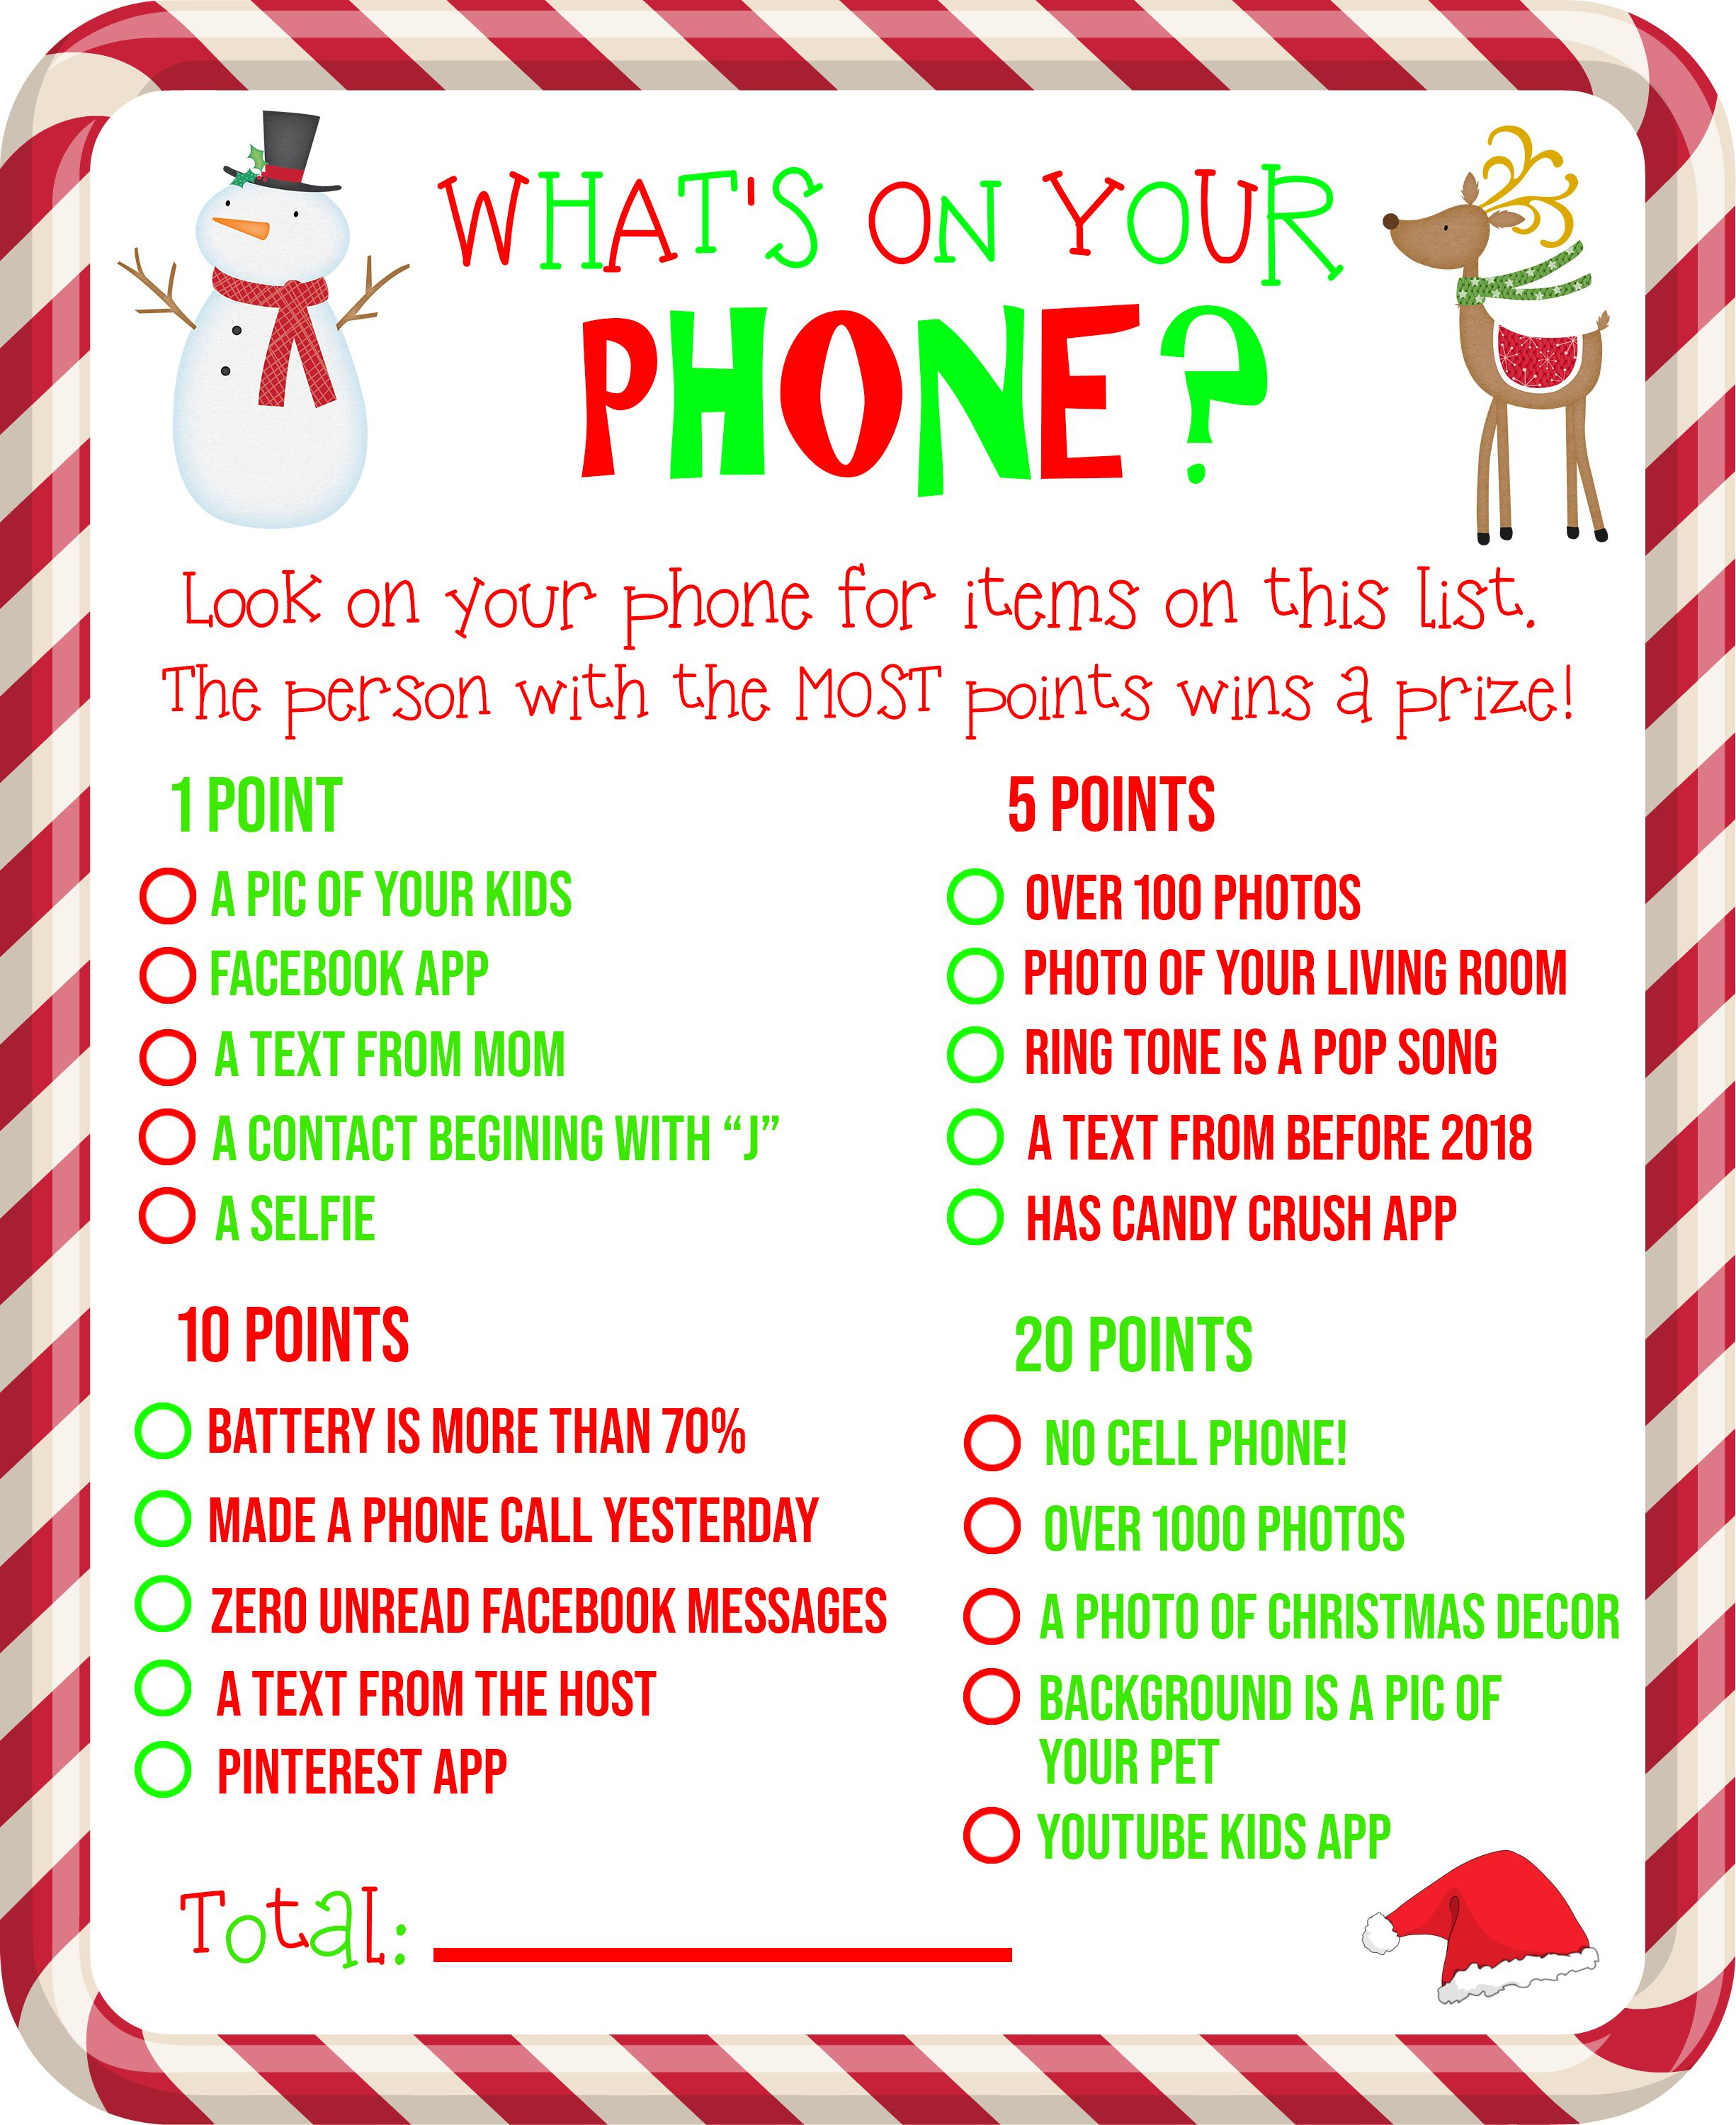 Free Printable! What's On Your Phone Christmas Party Game - Free Holiday Games Printable